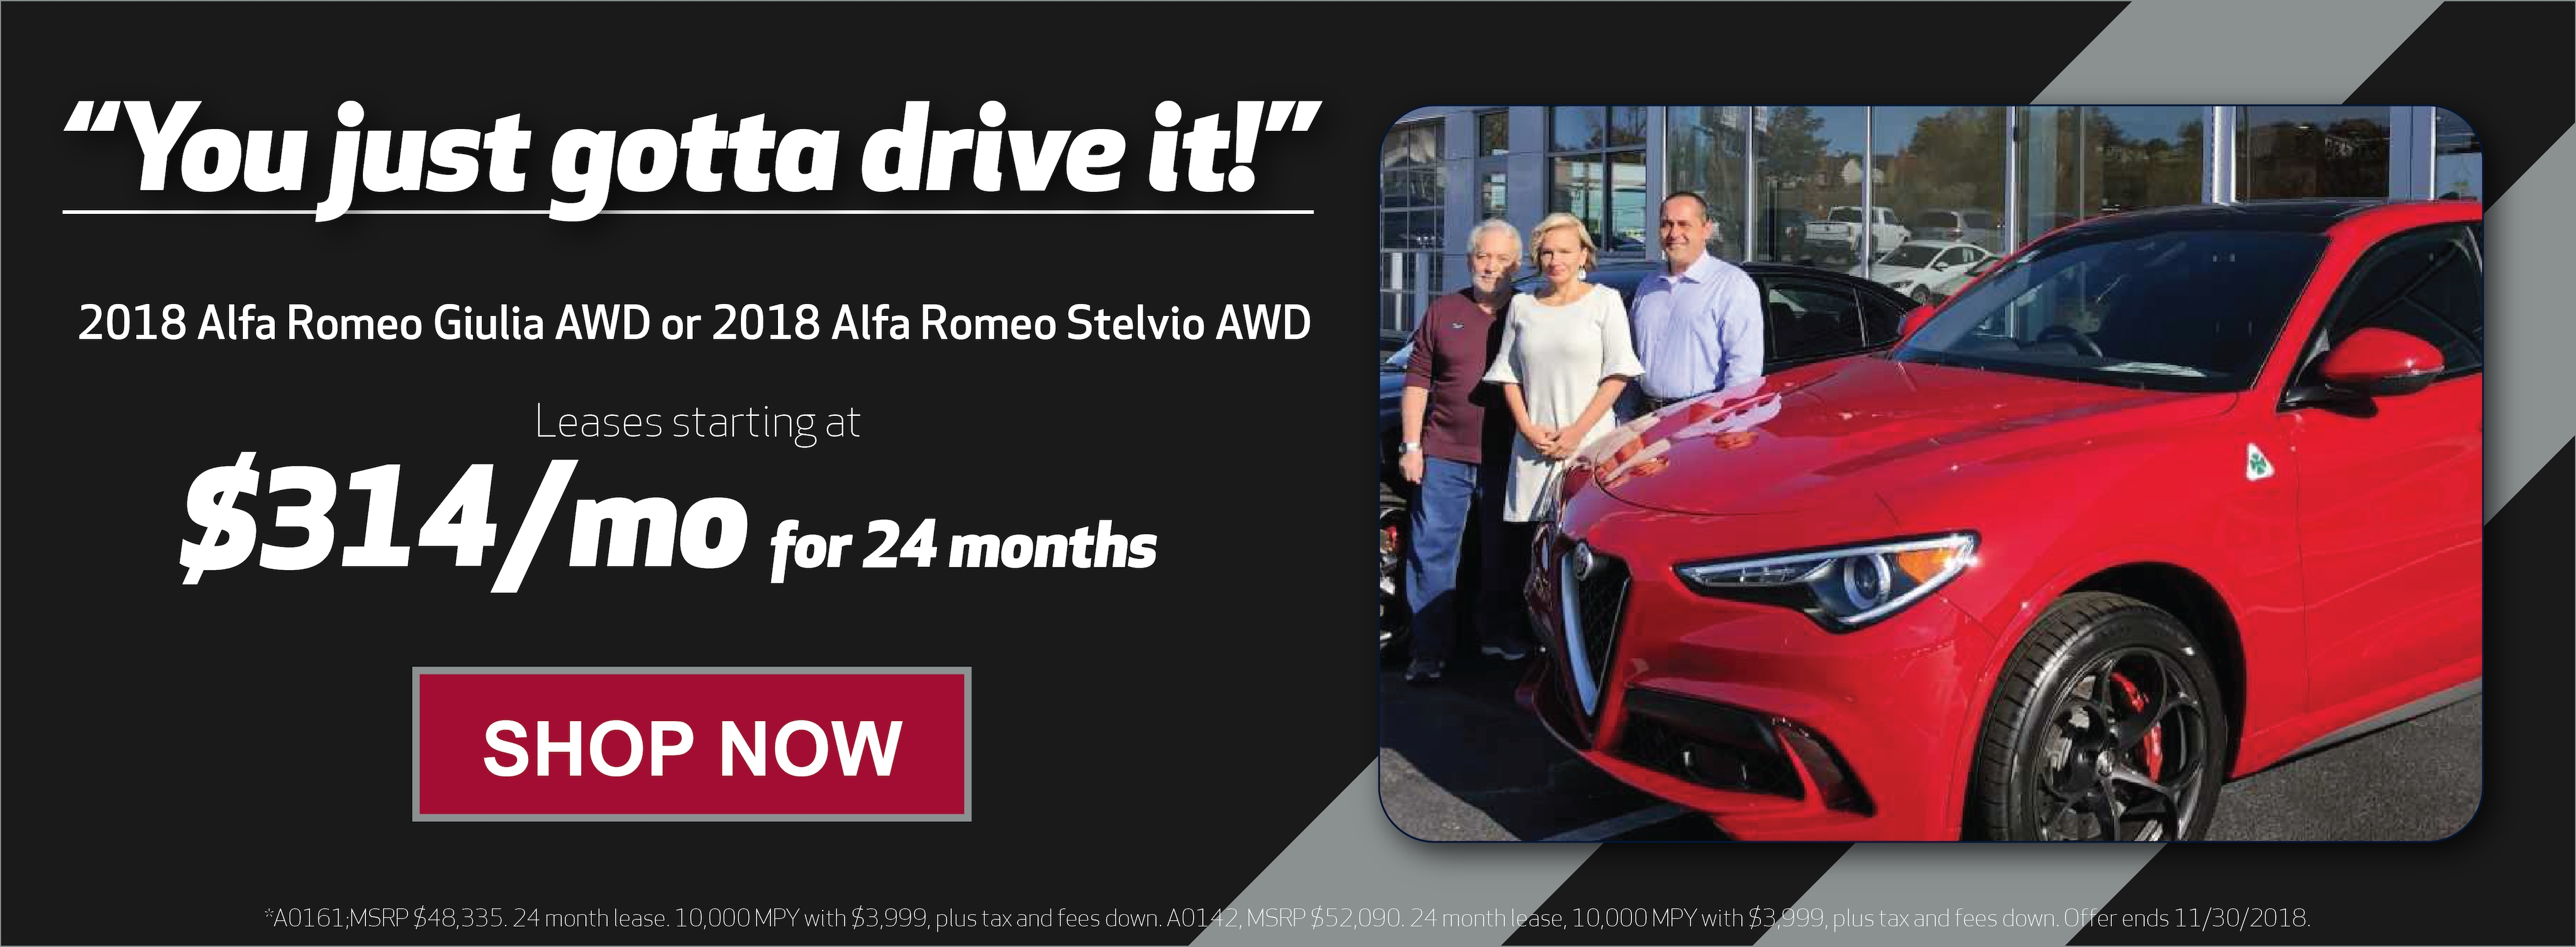 Alfa Romeo Giulia Vs Bmw 3 Series In Wilkes Barre Msrp The Competition